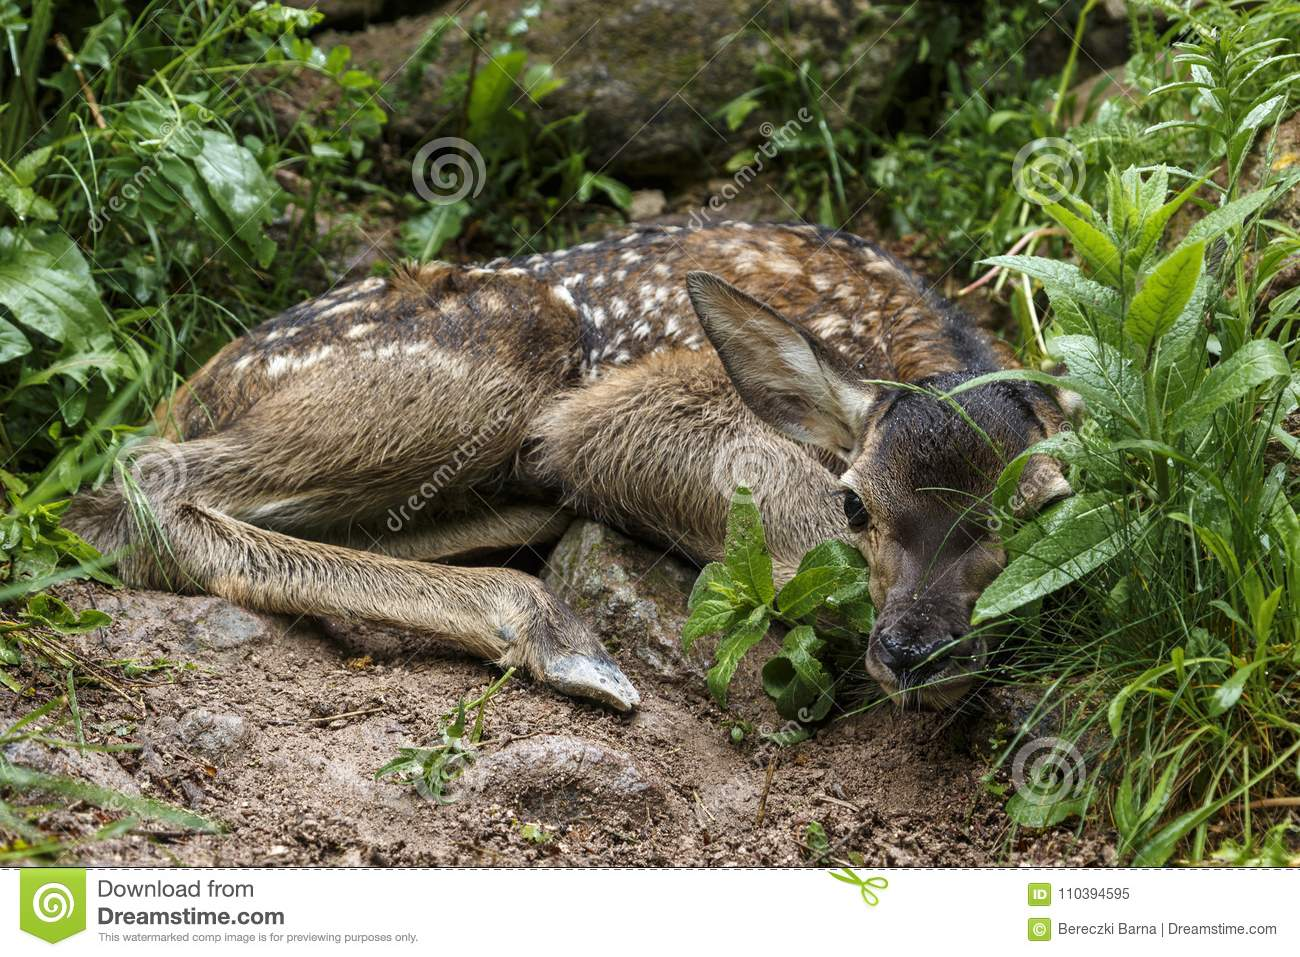 Closeup of a whitetail deer fawn bedded down in a woodland habitat.